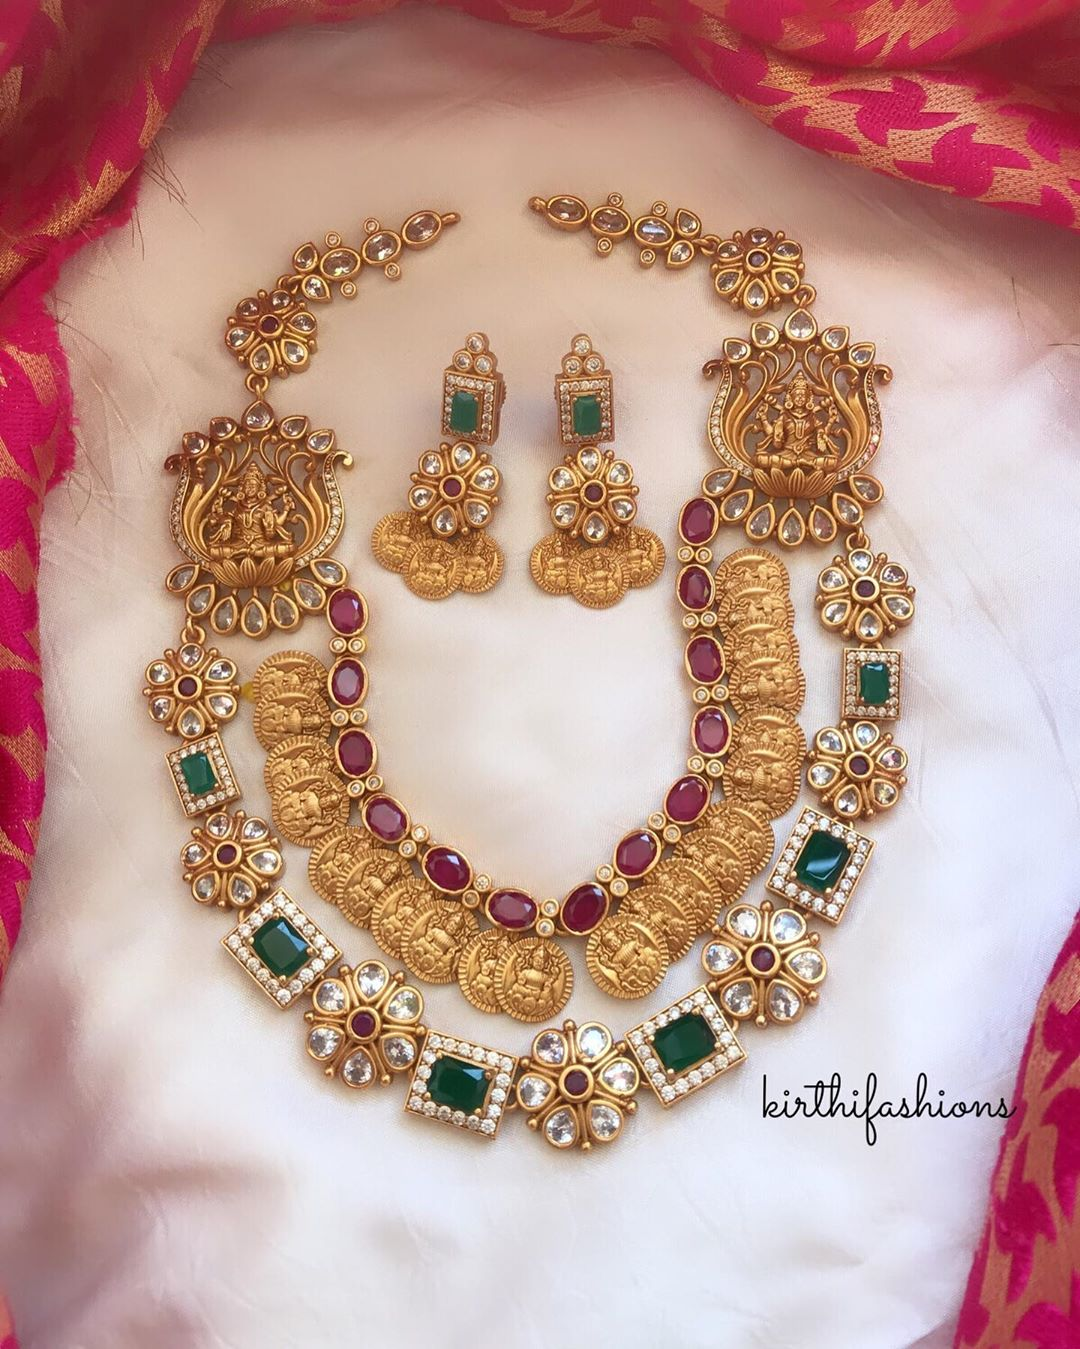 imitation-jewellery-online-shopping-4